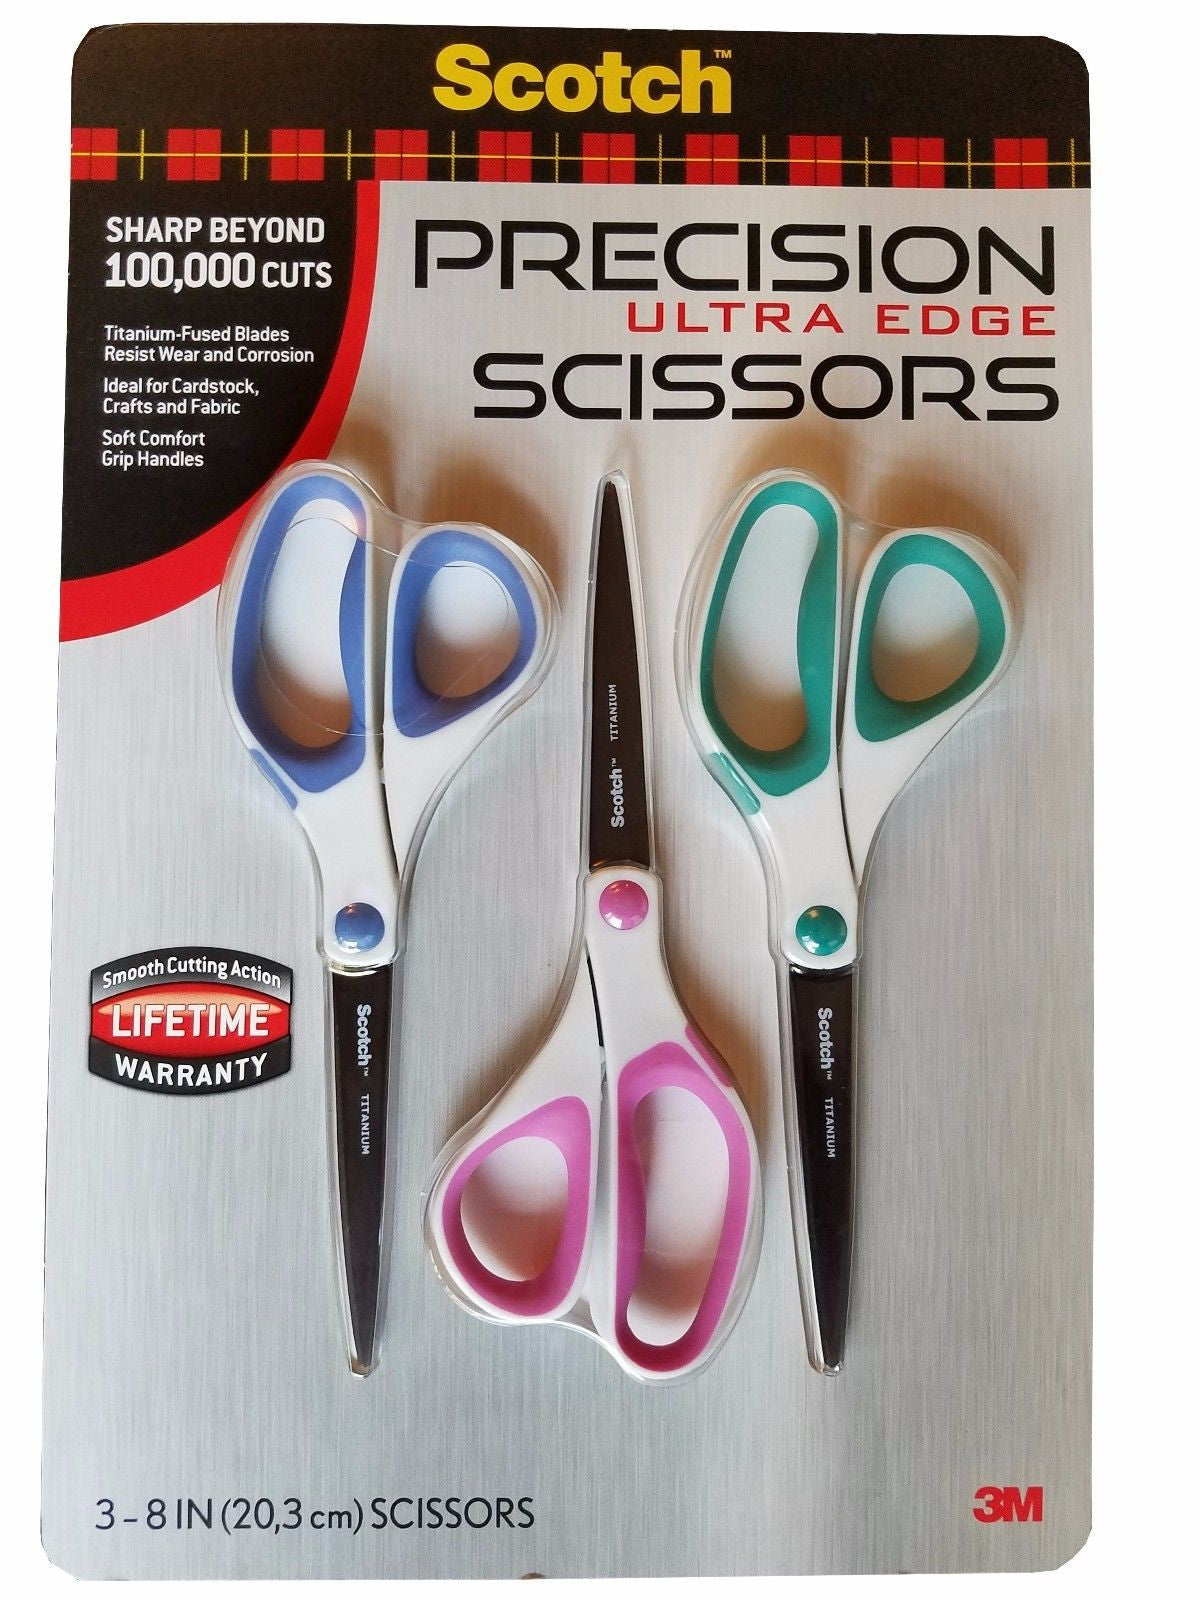 Scotch 3M Precision Ultra Edge 8 inch Titanium Edge Scissors 3 Pack